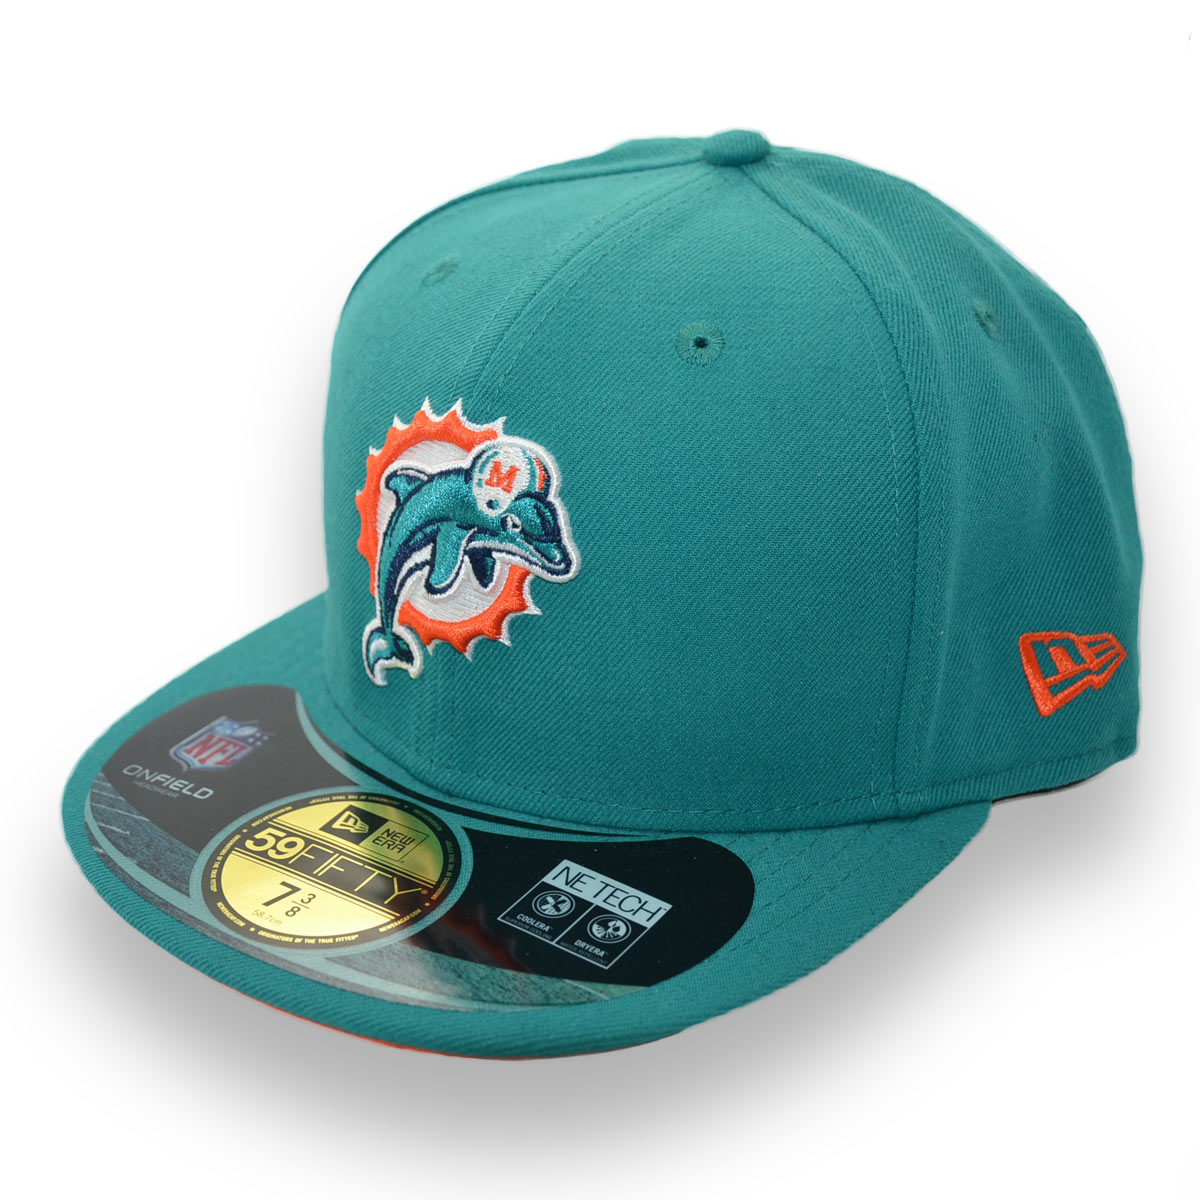 cheaper 14dae 9c110 ... coupon code new era miami dolphins on field nfl fitted cap 7 3 8 58.7cm